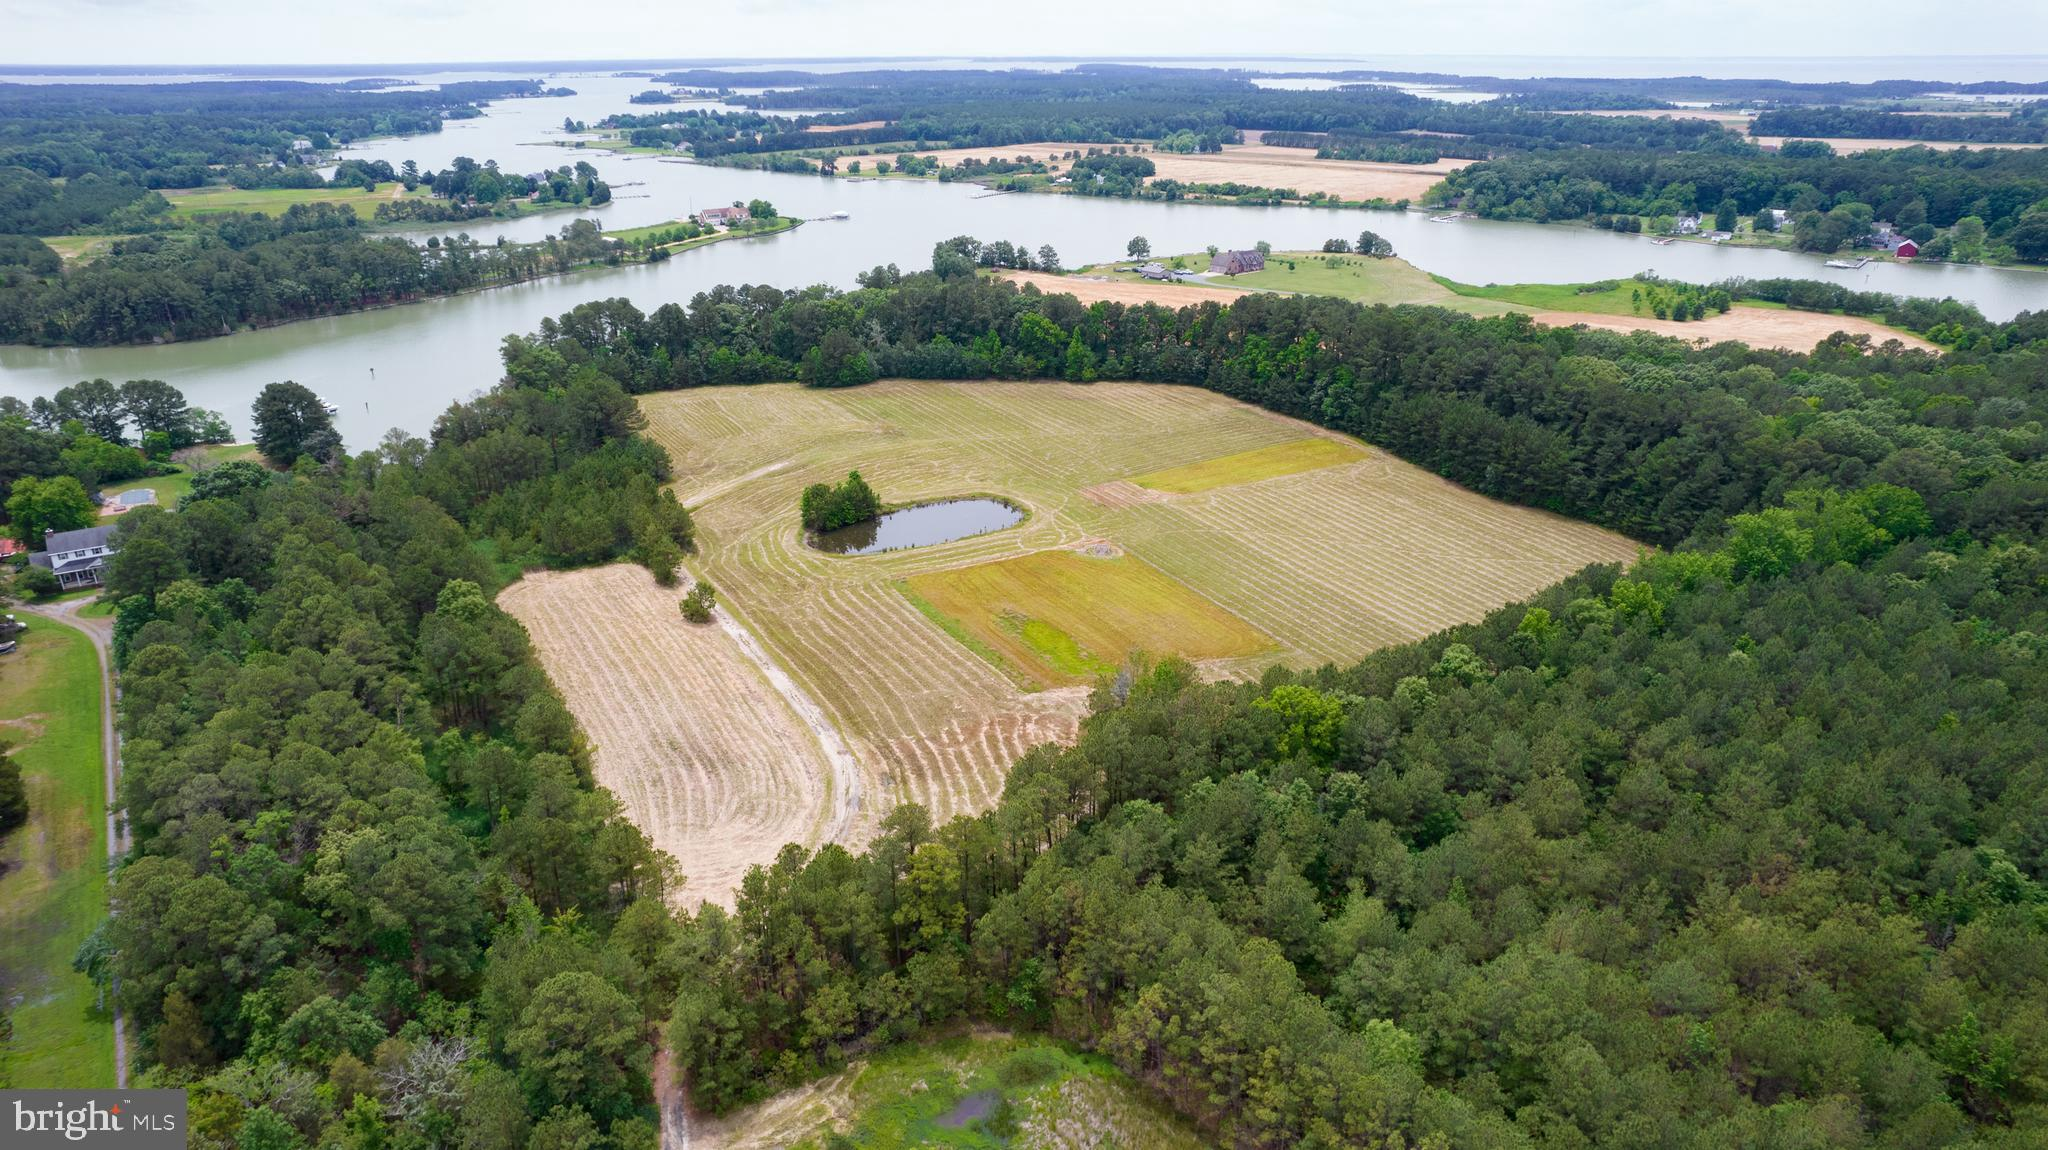 """Once known as """"Gold Dust Farm"""" this 25 acre +/- waterfront parcel traces back to a patent issued in 1669!  The perfect hunting paradise, or place to build your dream home (or both)  - this parcel is partially wooded, but also offers cleared land, and income from CRP.    The berm pond and driveway are already in place.  Located on tranquil  Hudson Creek. Well documented history  on file, and a cool back story- if you've been looking for a place on the Shore - make sure you check this one out! Quick trip to Cambridge eateries and attractions. No sign on property - gated locked entrance - appt. required."""